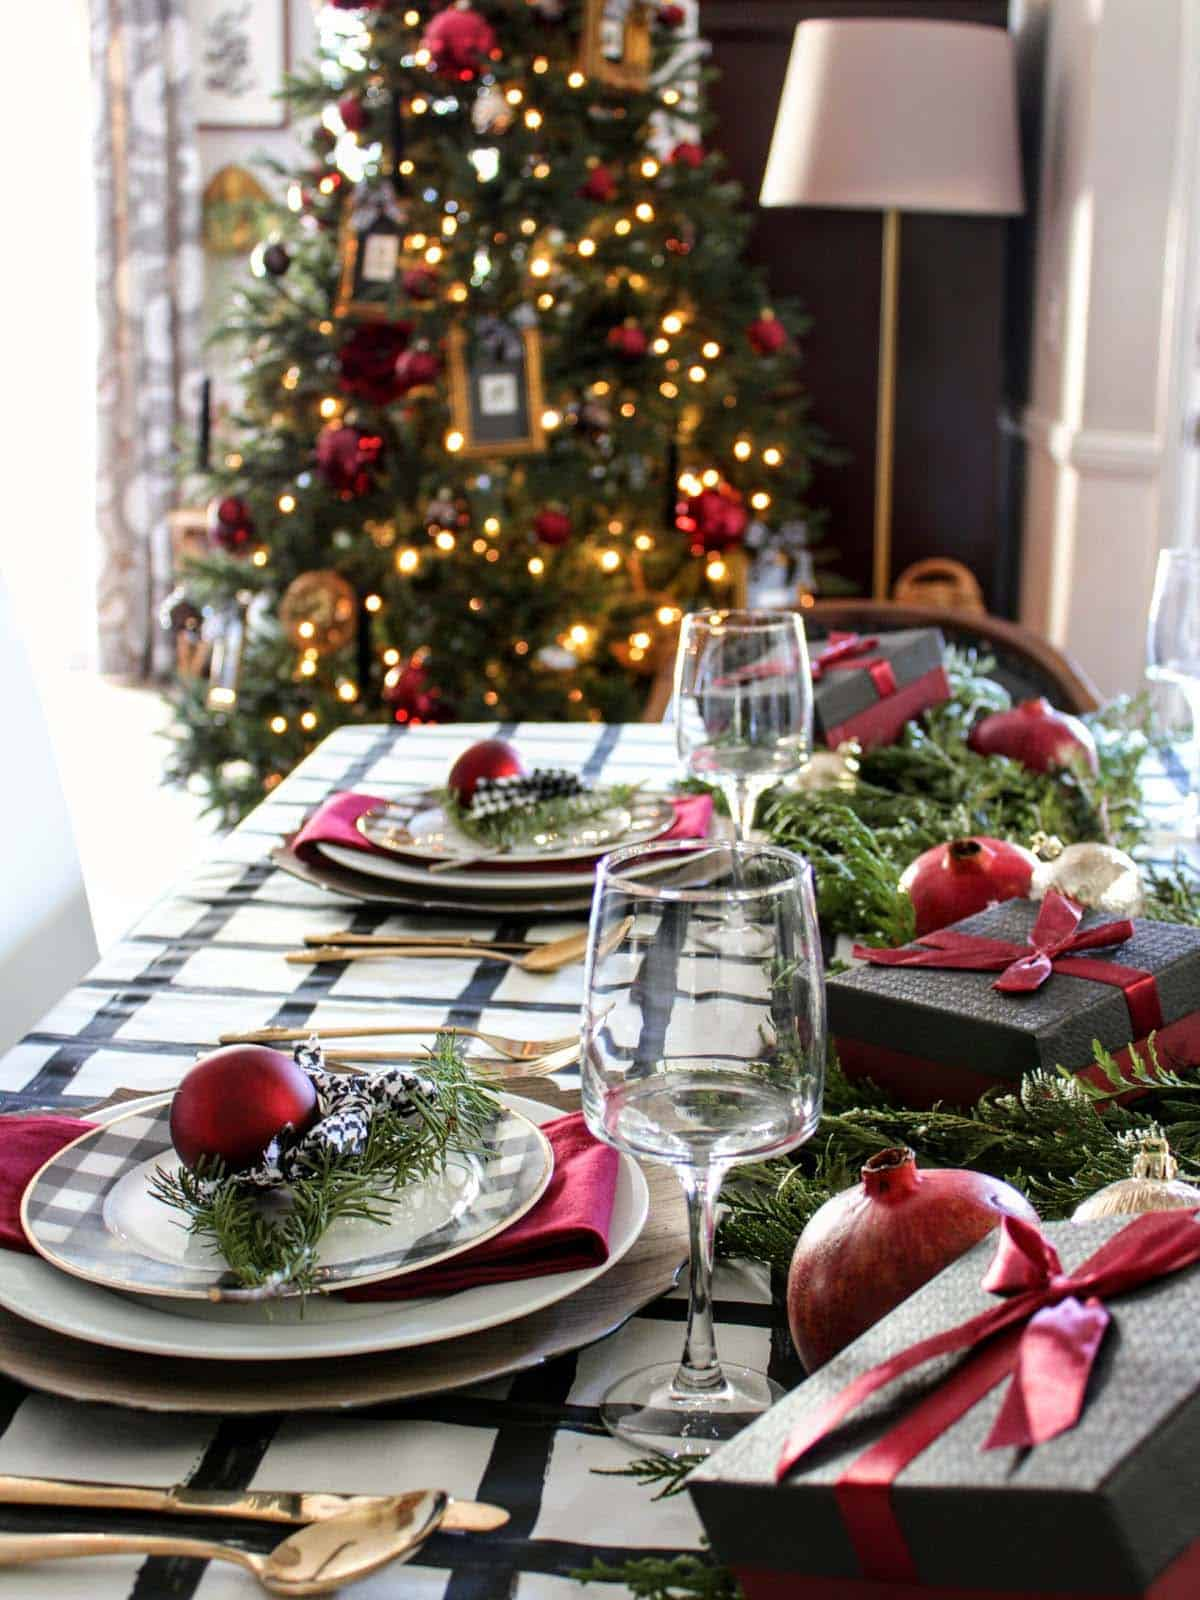 Inspiring Dining Table Christmas Decor Ideas-21-1 Kindesign